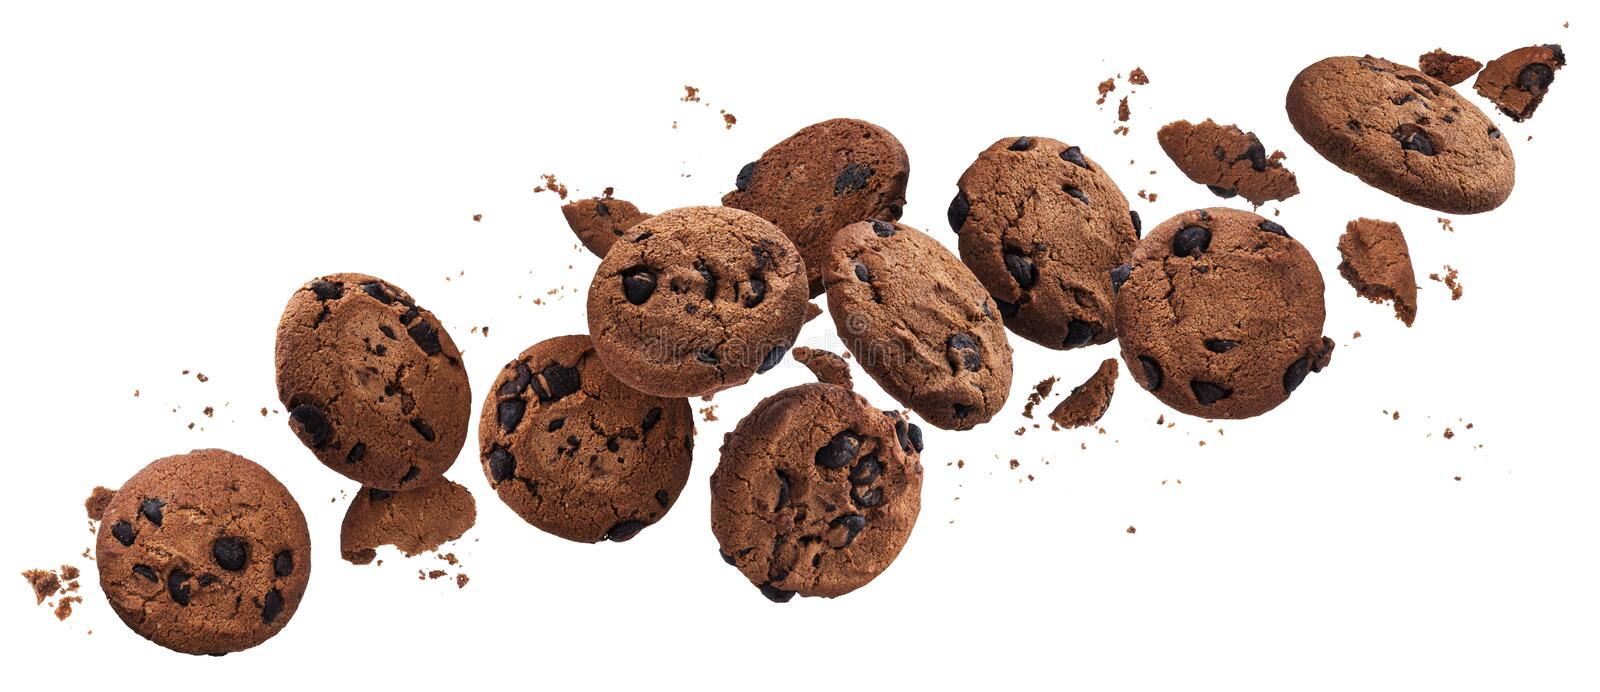 Falling broken chocolate chip cookies isolated on white background with clipping path royalty free stock photos